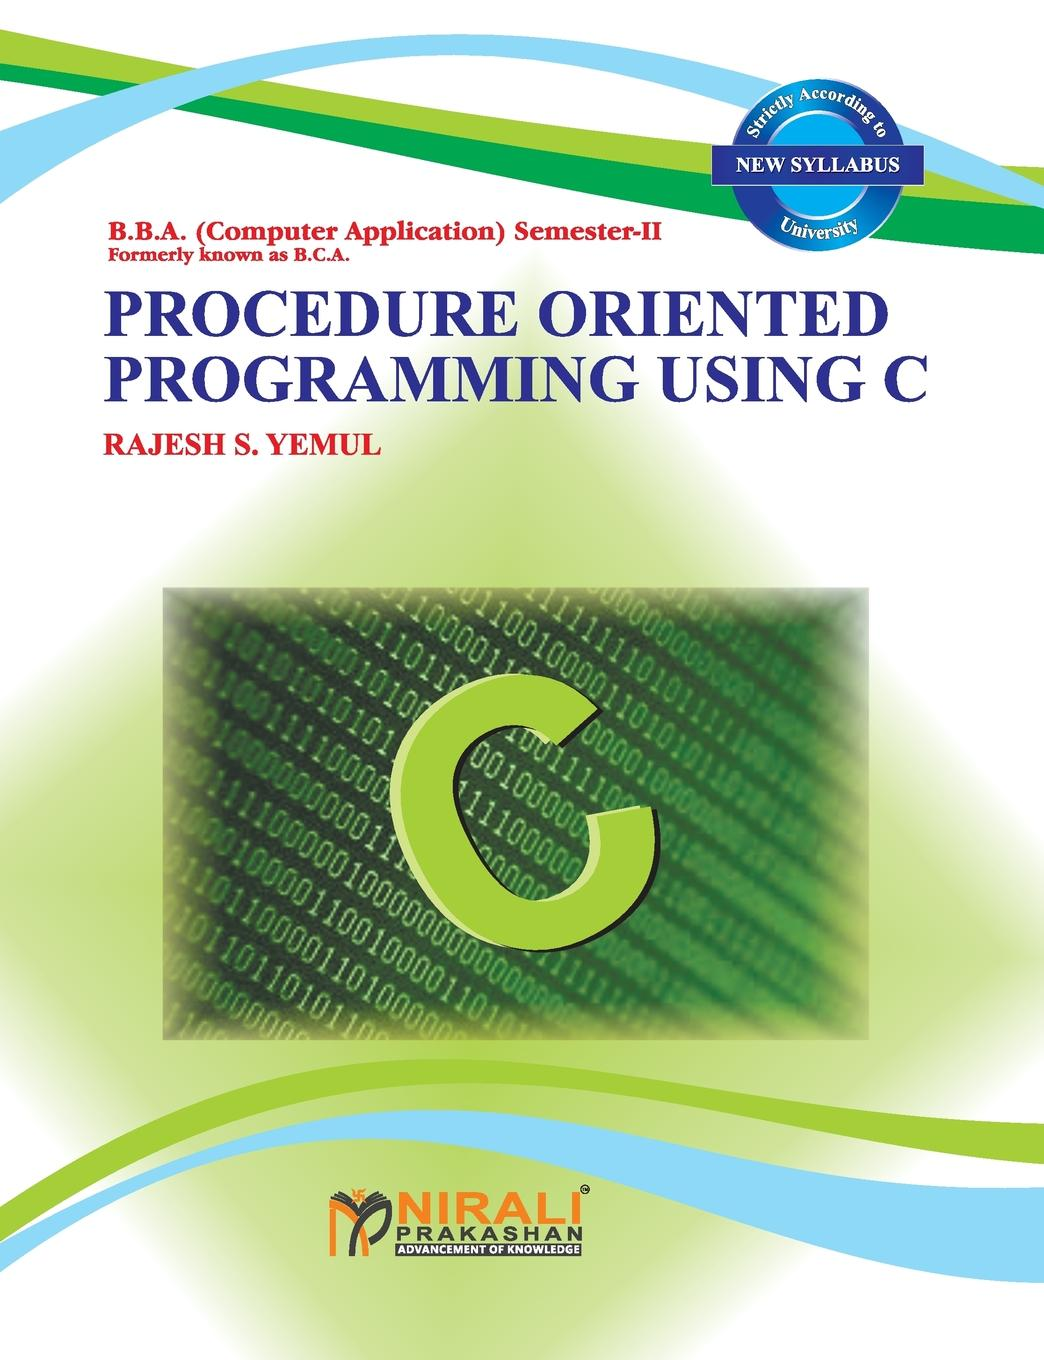 RAJESH S YEMUL PROCEDURE ORIENTED PROGRAMMING USING C roger huder c disaster operations and decision making